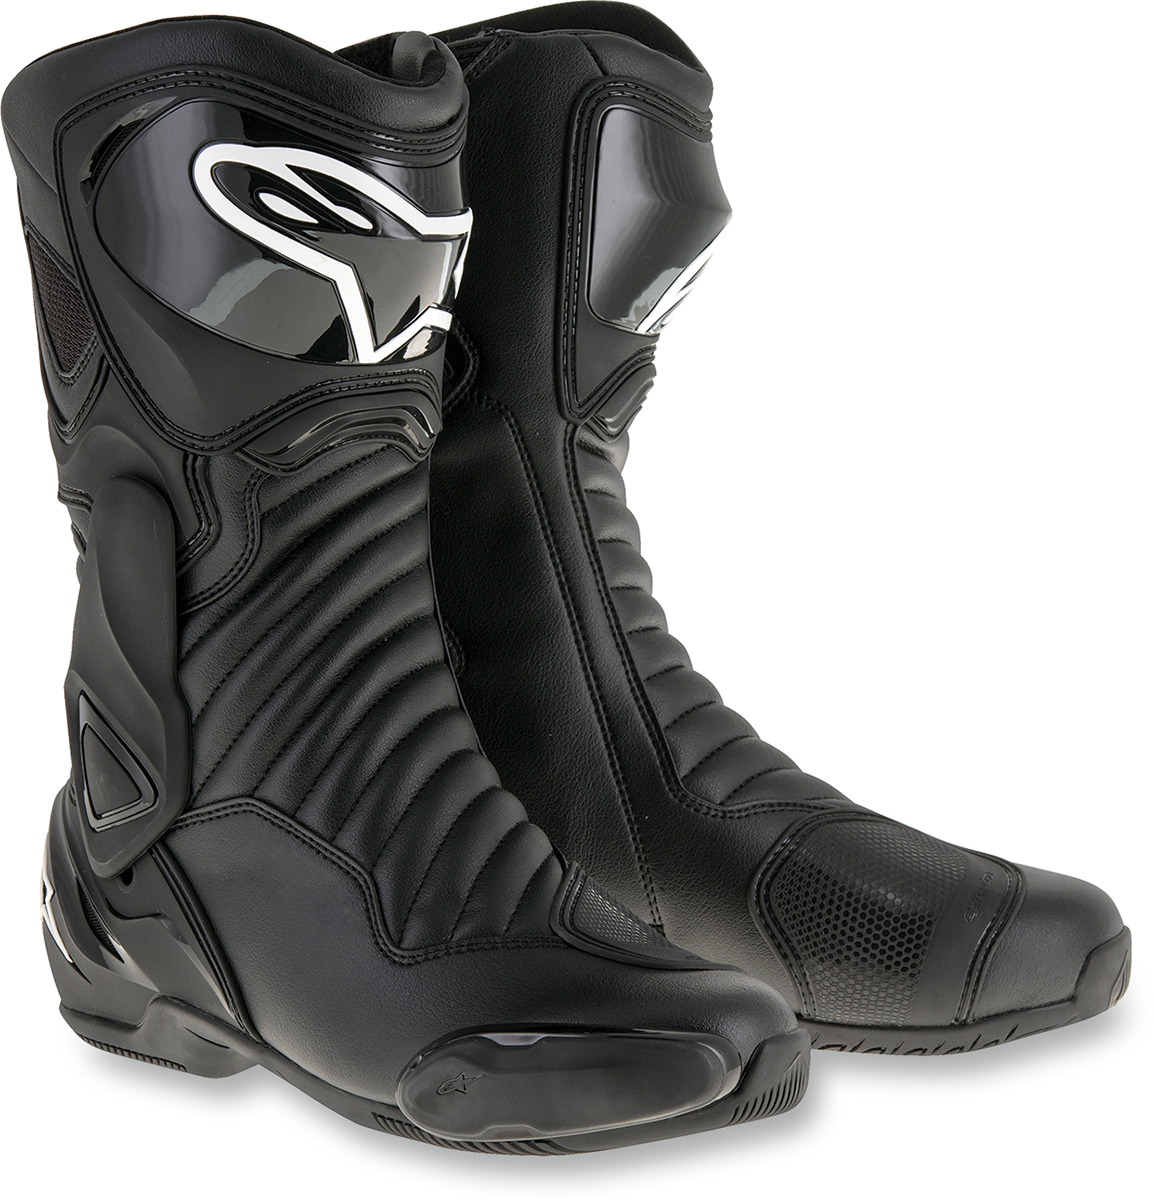 Mens Alpinestars Black SMX-6 V2 Textile Motorcycle Riding Street Racing Boots